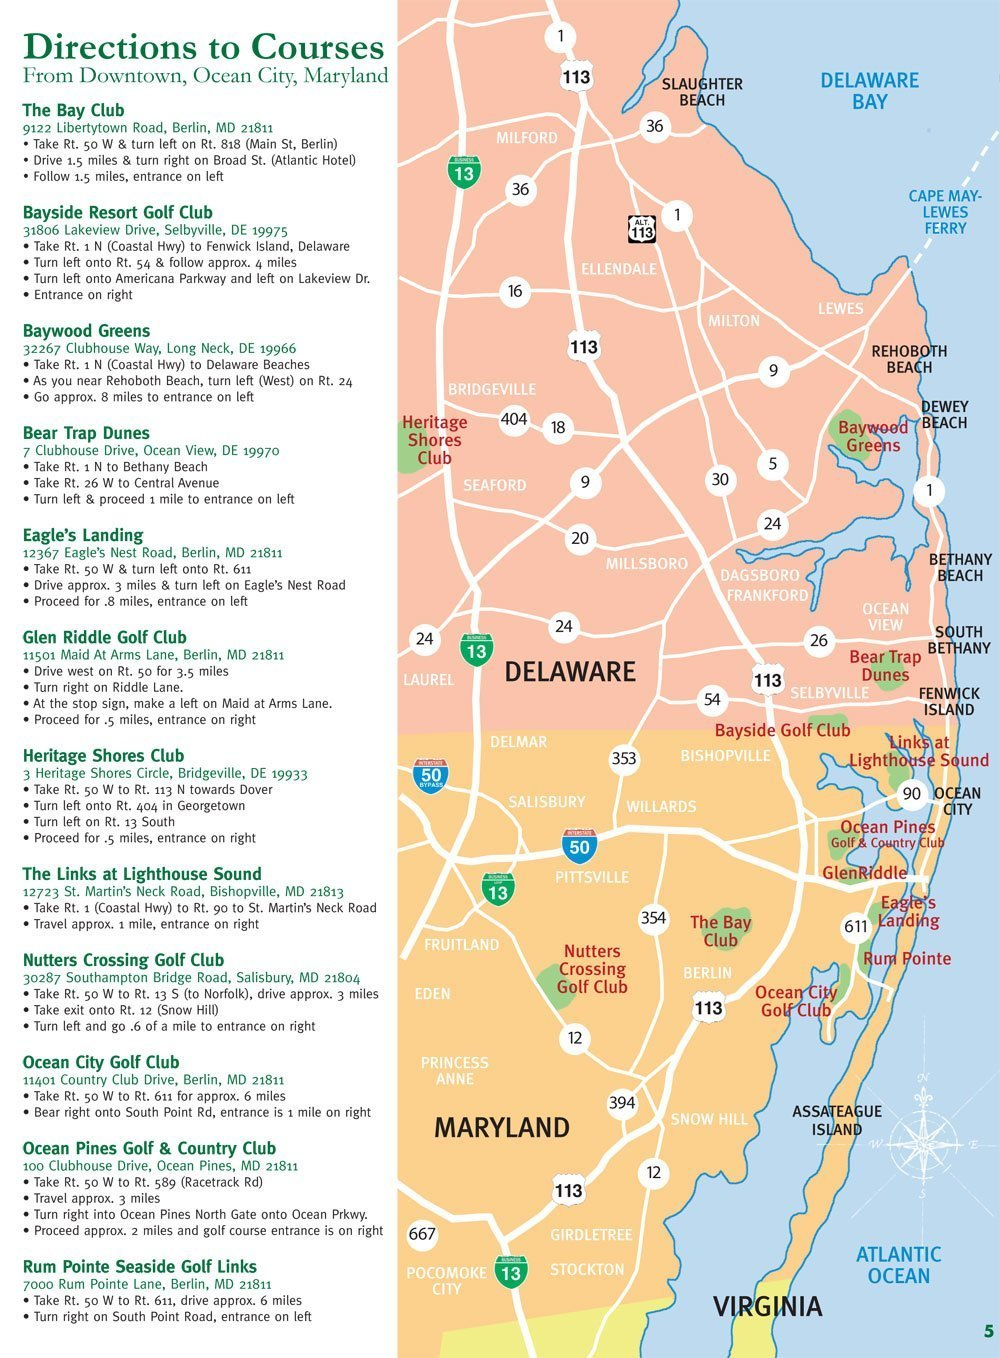 Golf Courses Map | Ocean City Golf Getaway | MD Eastern S on new zeal map, jurisdiction c map, university of wisconsin hospital map, pa map, mi map, michigan heart map, louisiana map, chesapeake bay map, tz map, mp map, nh map, ri map, de map, ma map, vg map, ca map, va map, mo map, ae map, baltimore food map,